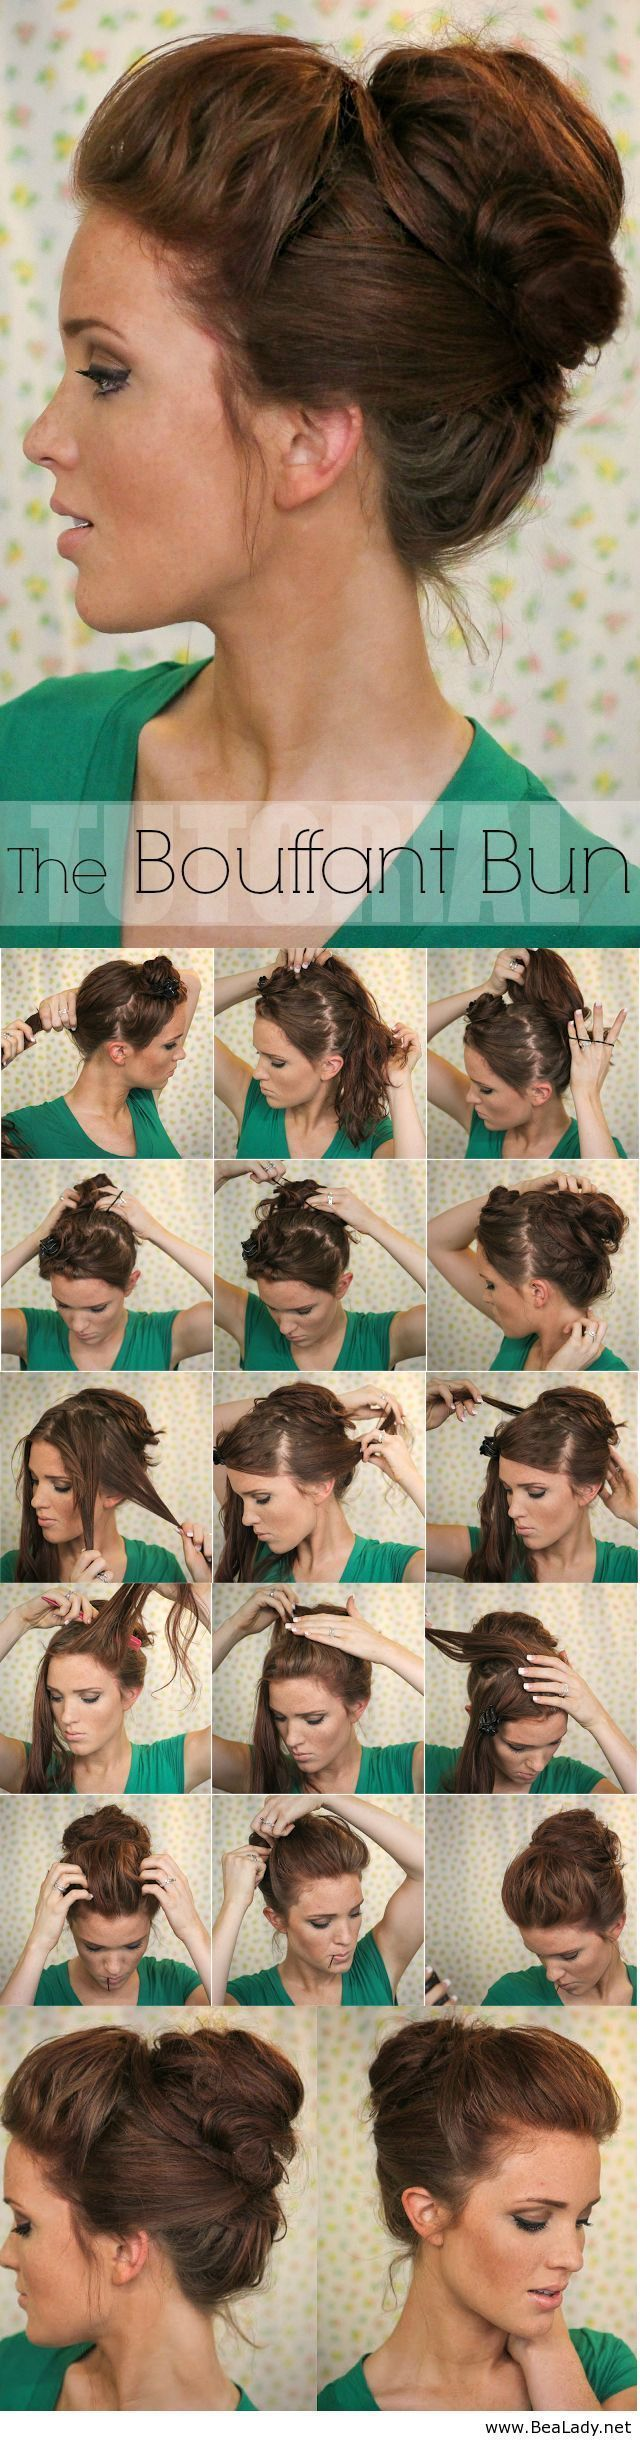 58 best bouffant hairstyles images on pinterest | chignons, makeup